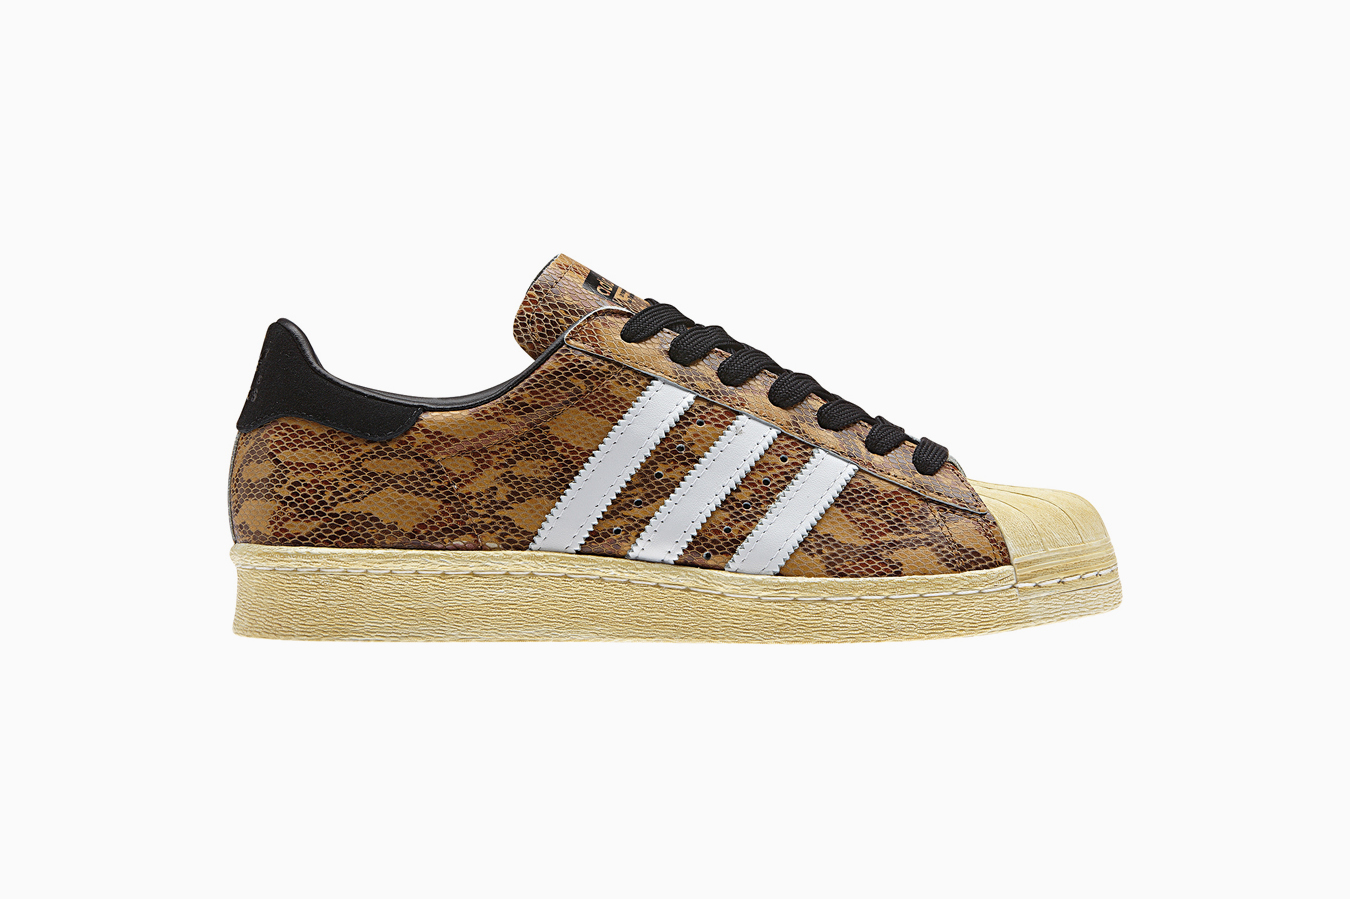 adidas Originals Fall 2013 Snakeskin BBall Pack